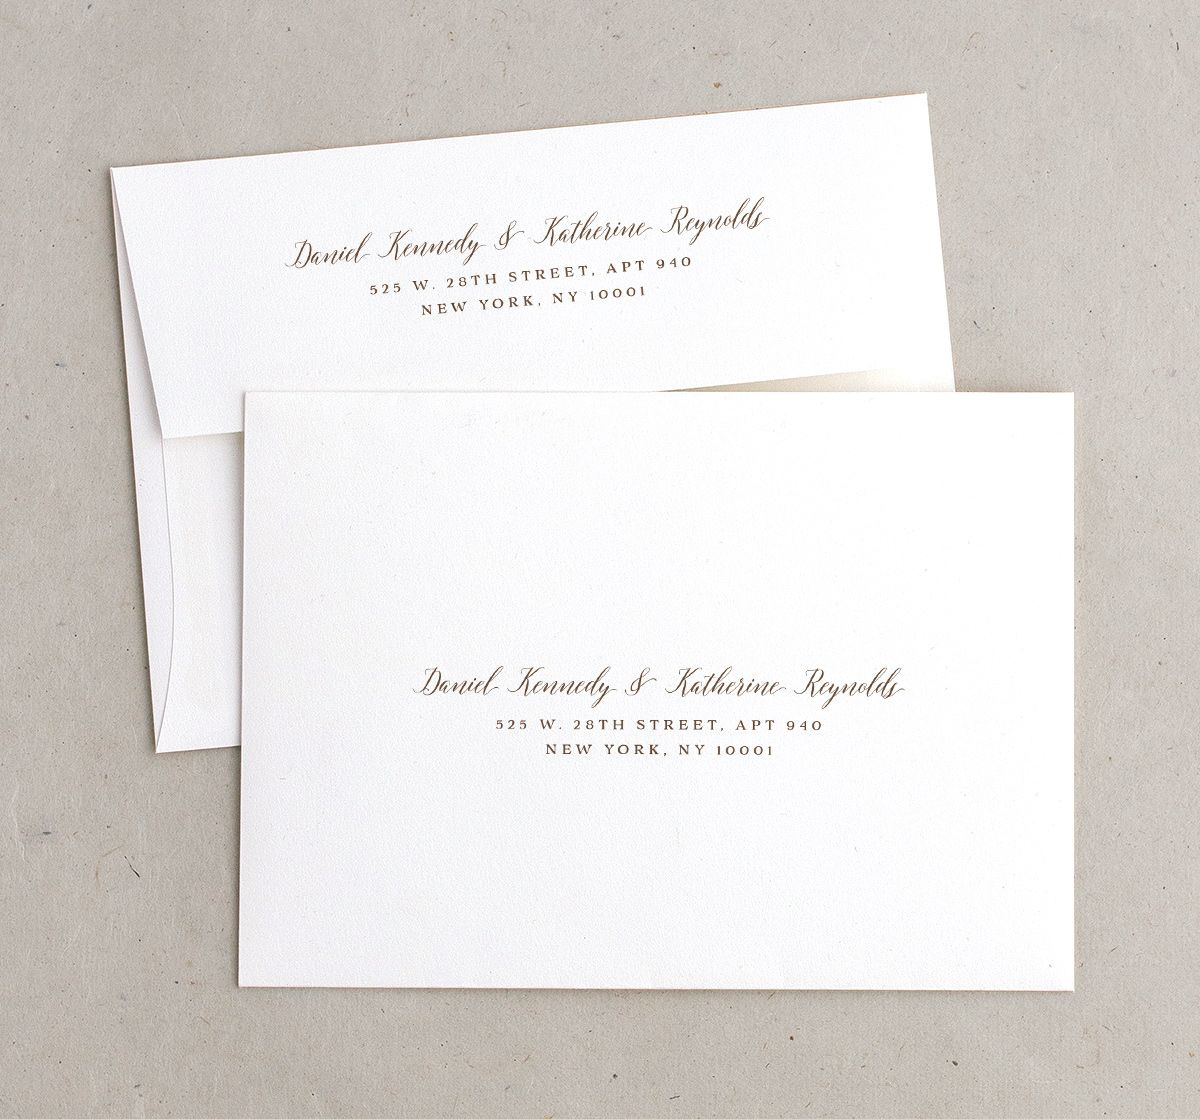 Woodgrain Lace wedding invitation envelopes